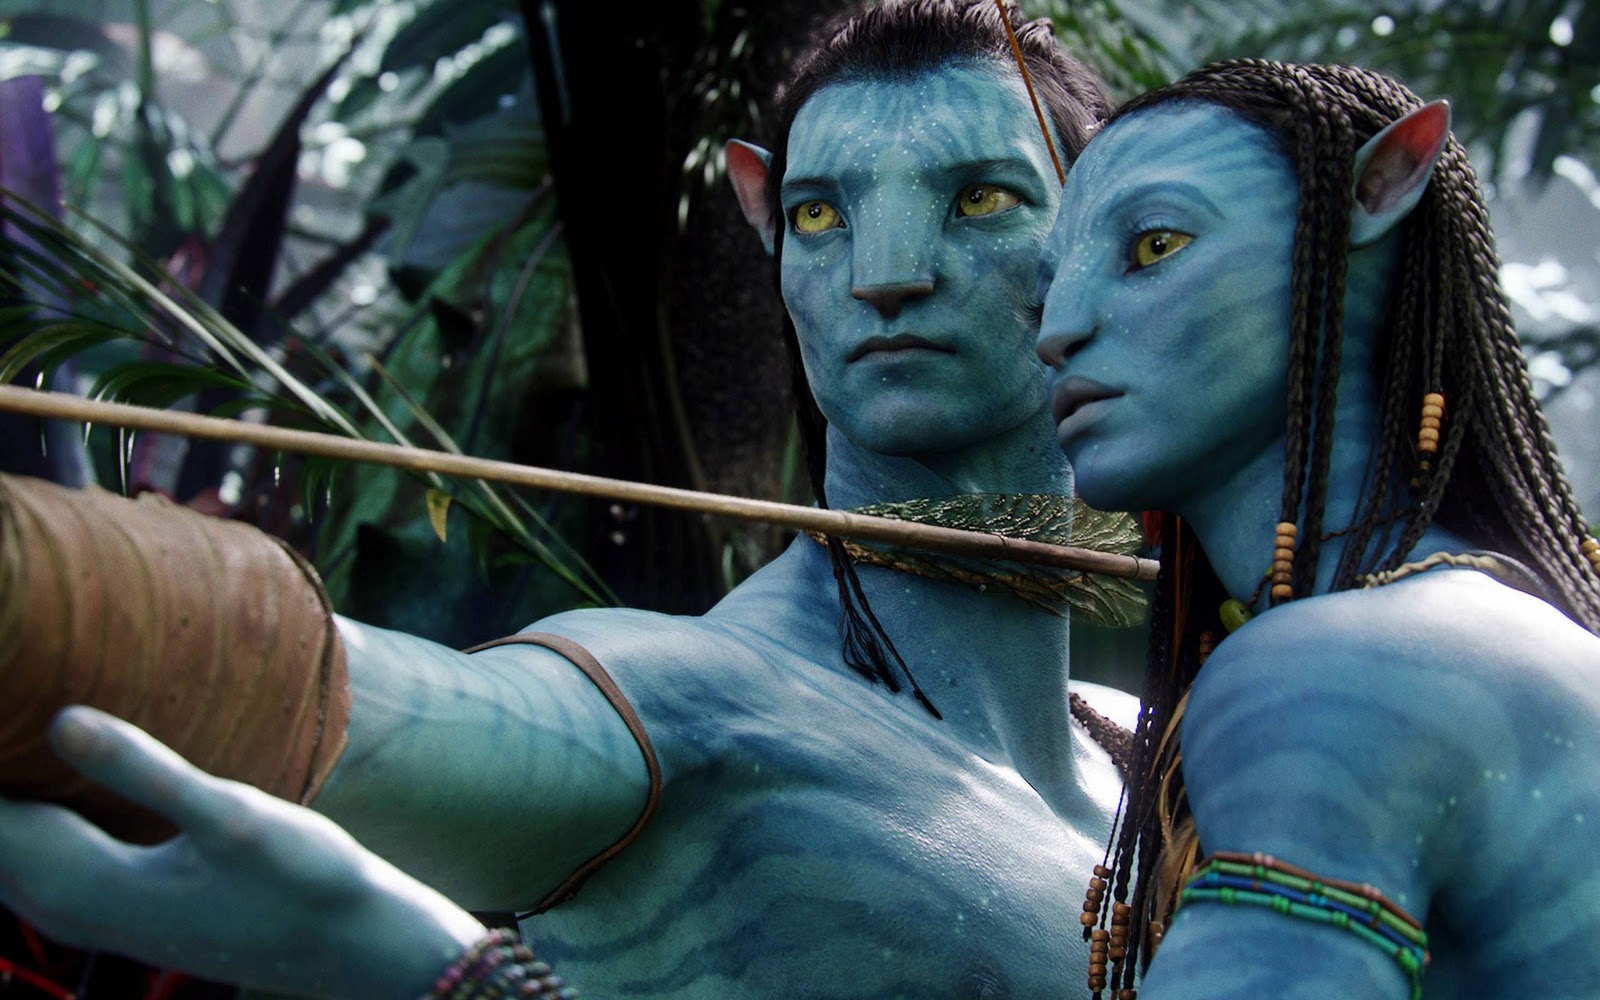 zoe saldana in avatar wallpaper background